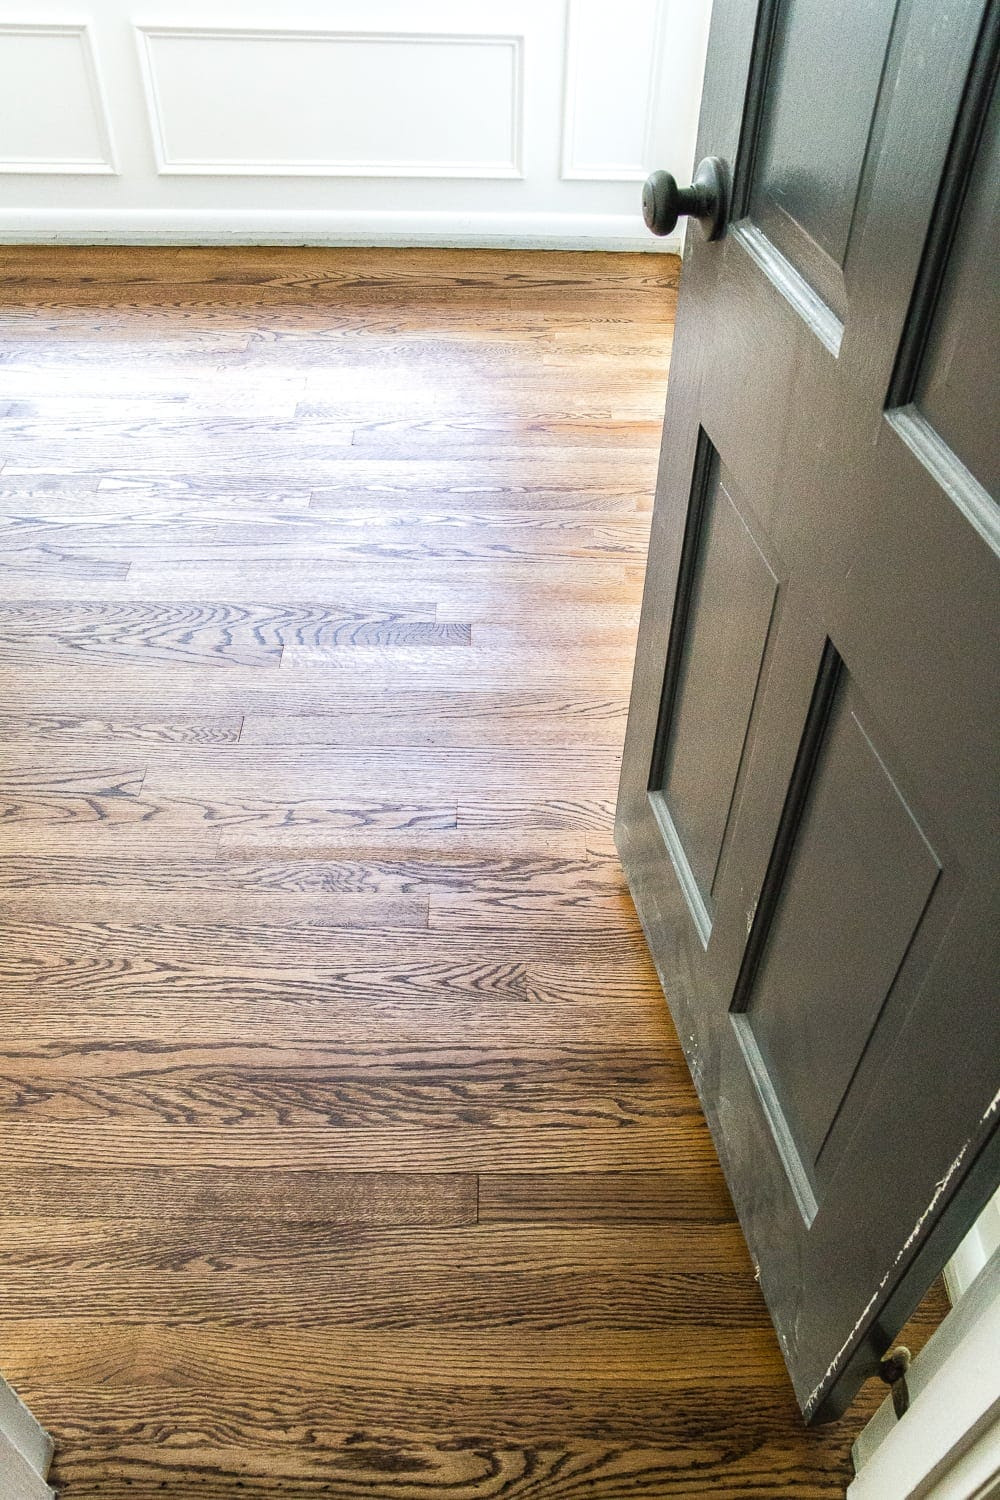 Minwax Provincial Stain + step-by-step guide for refinishing hardwood floors